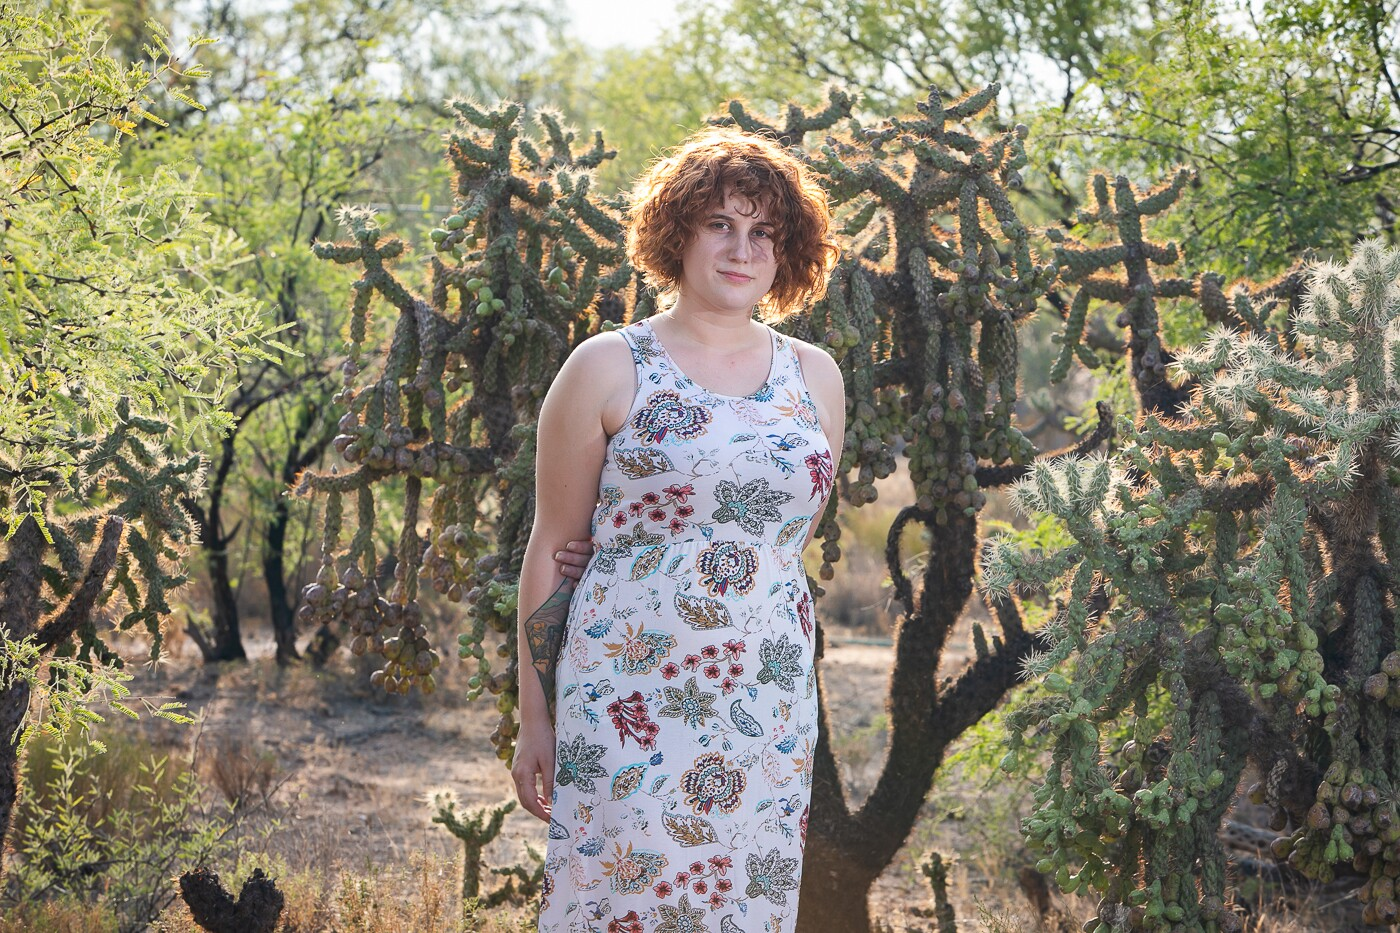 Photography © Kathleen Drier, creator of Tucson Black Voices and What White People Think